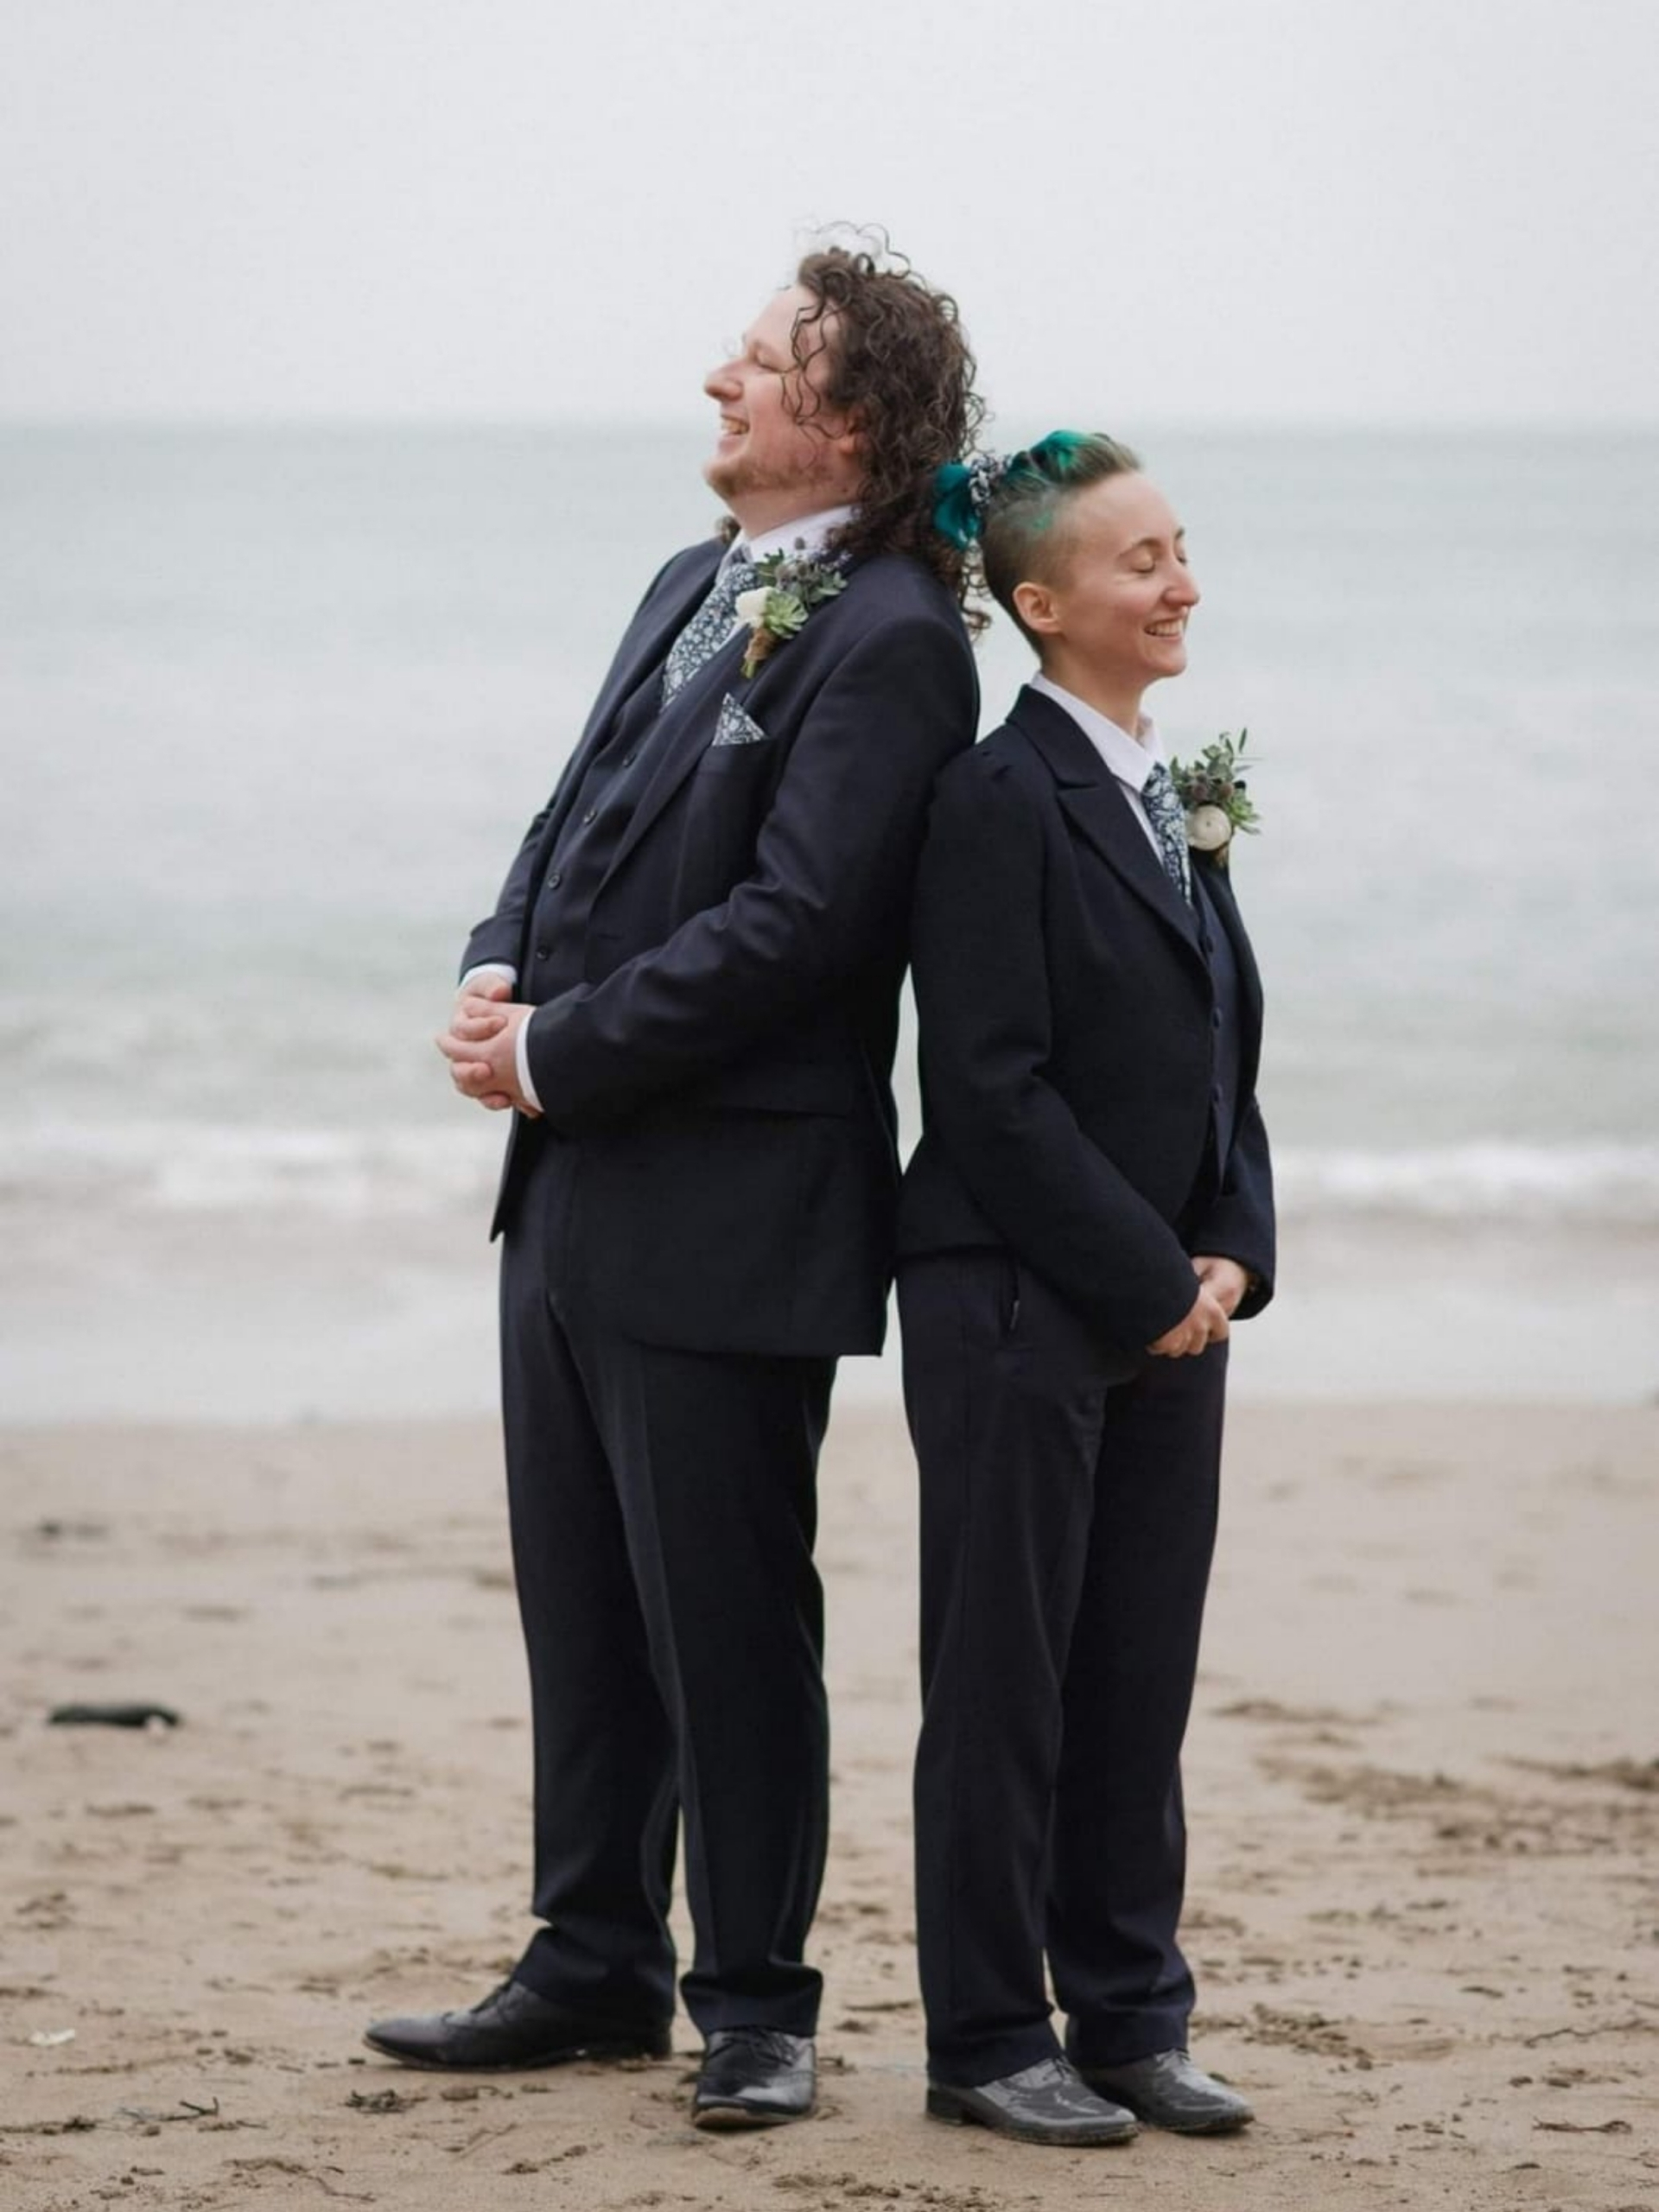 Two people in navy suits stand back to back on the beach, laughing